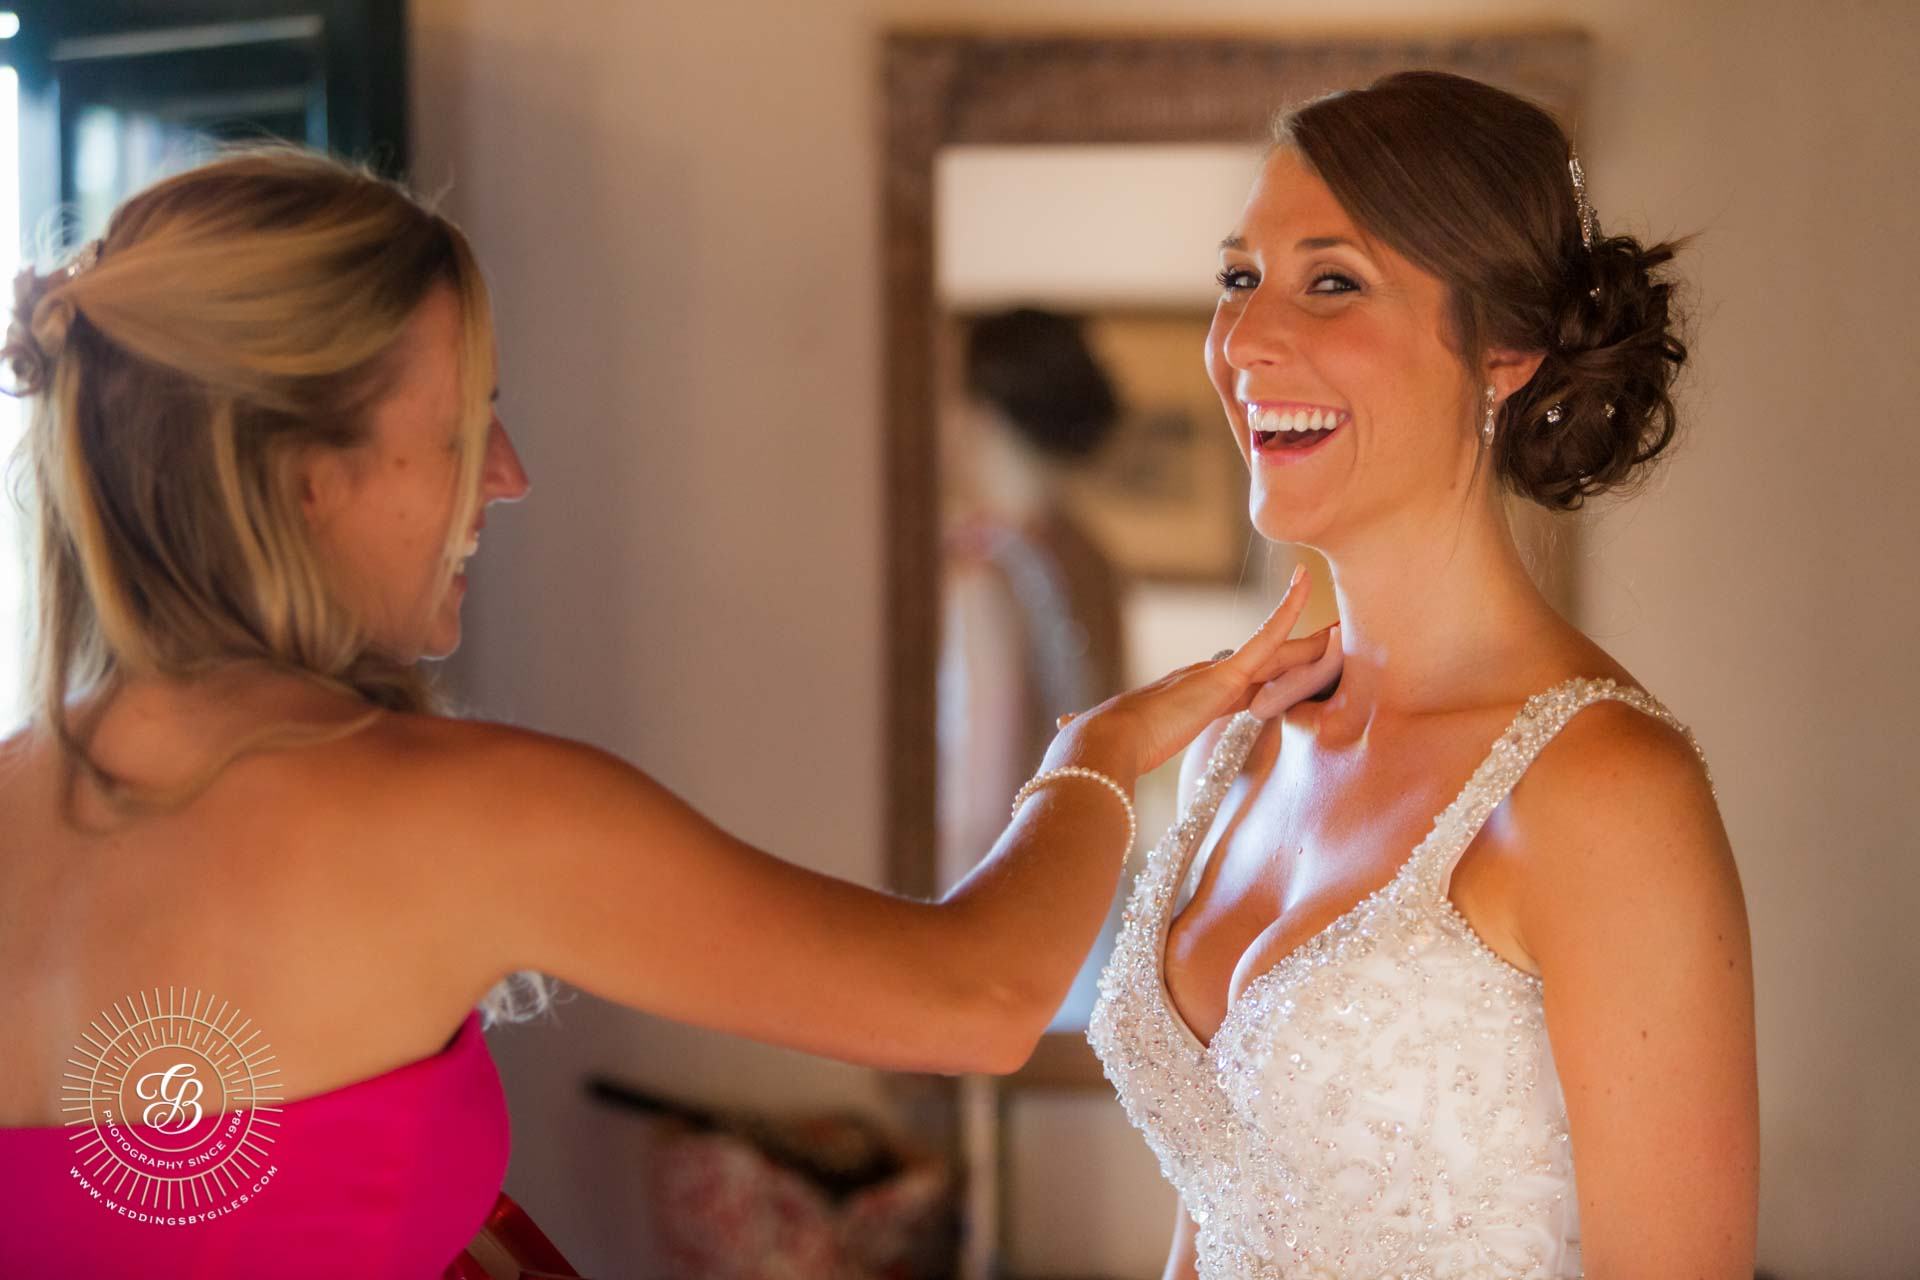 Finishing touches to the bride